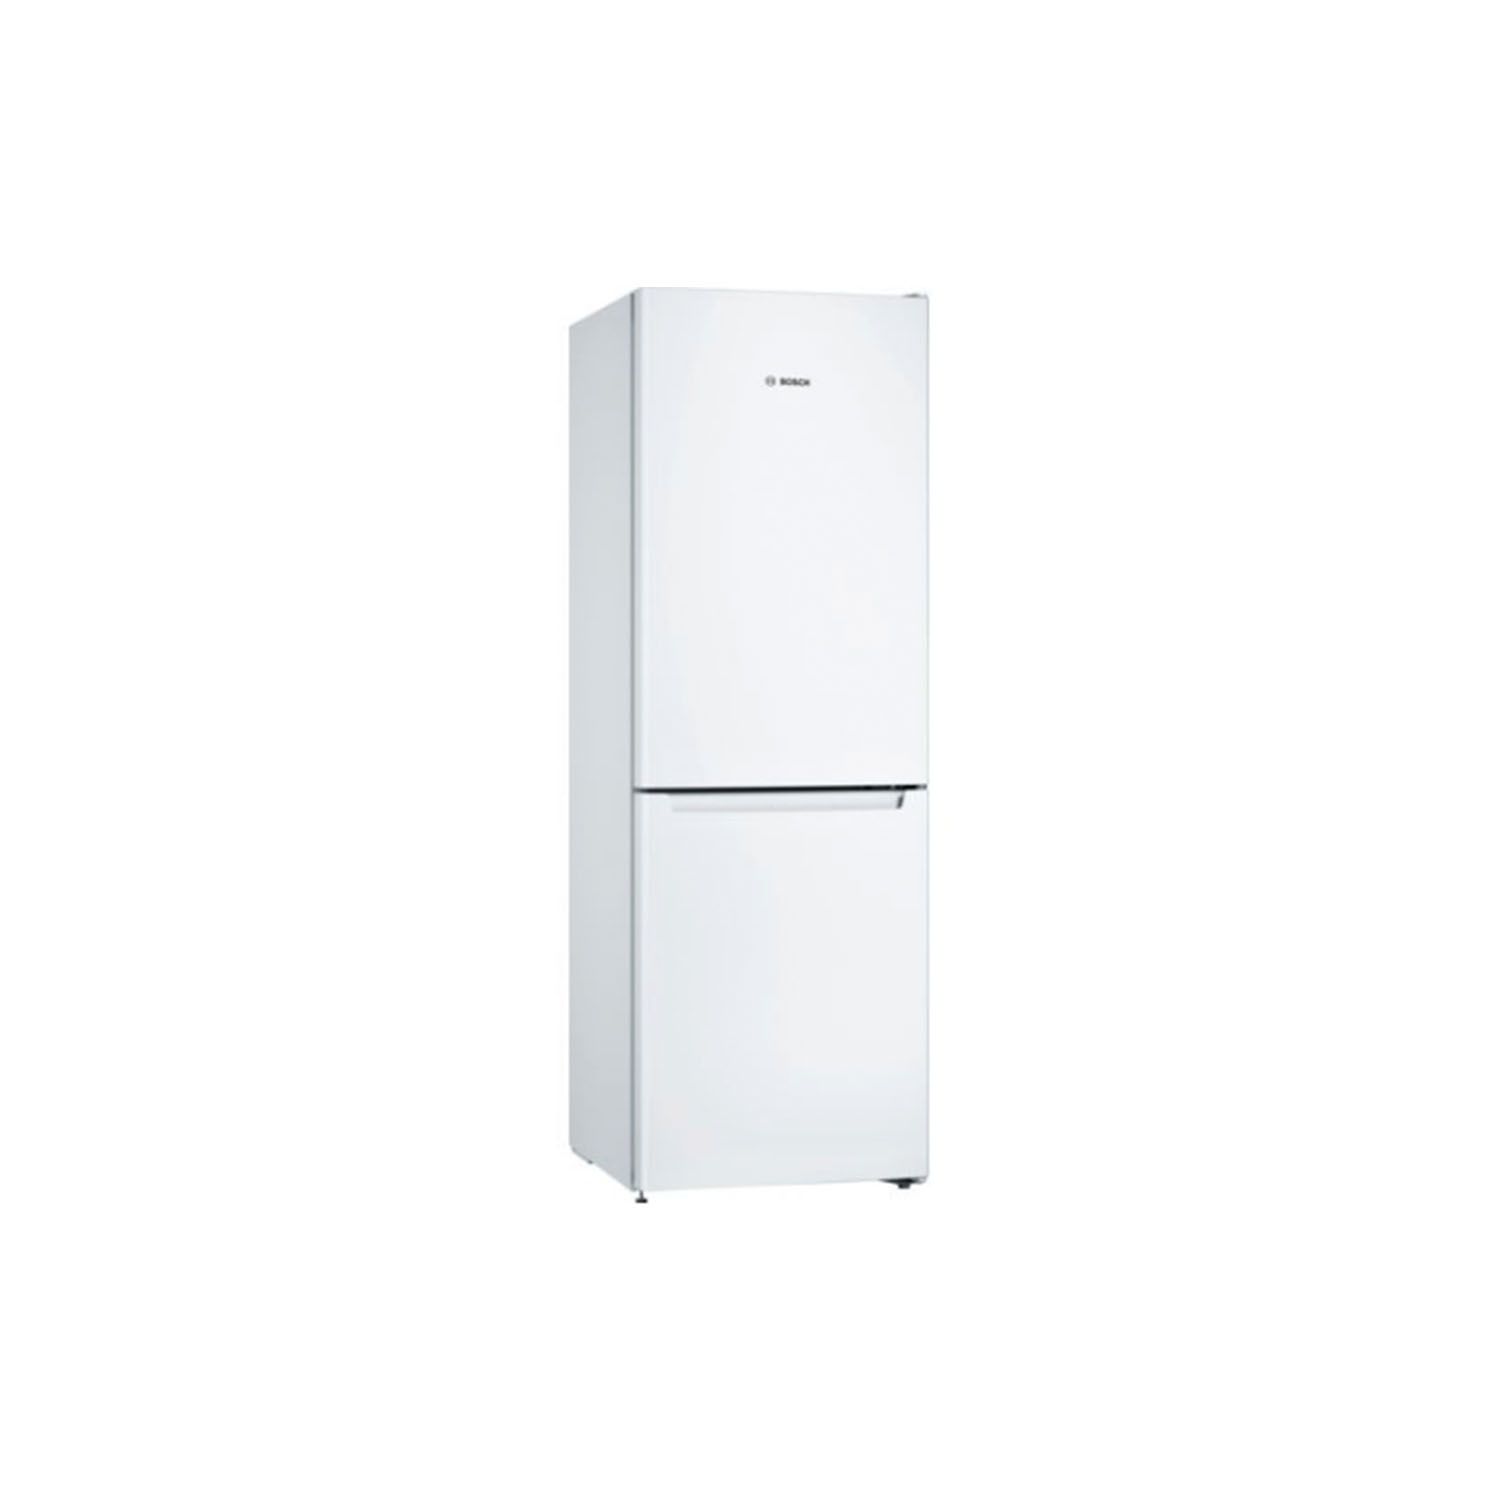 Bosch Frost Free Fridge Freezer - White - A++ Energy Rated - 1